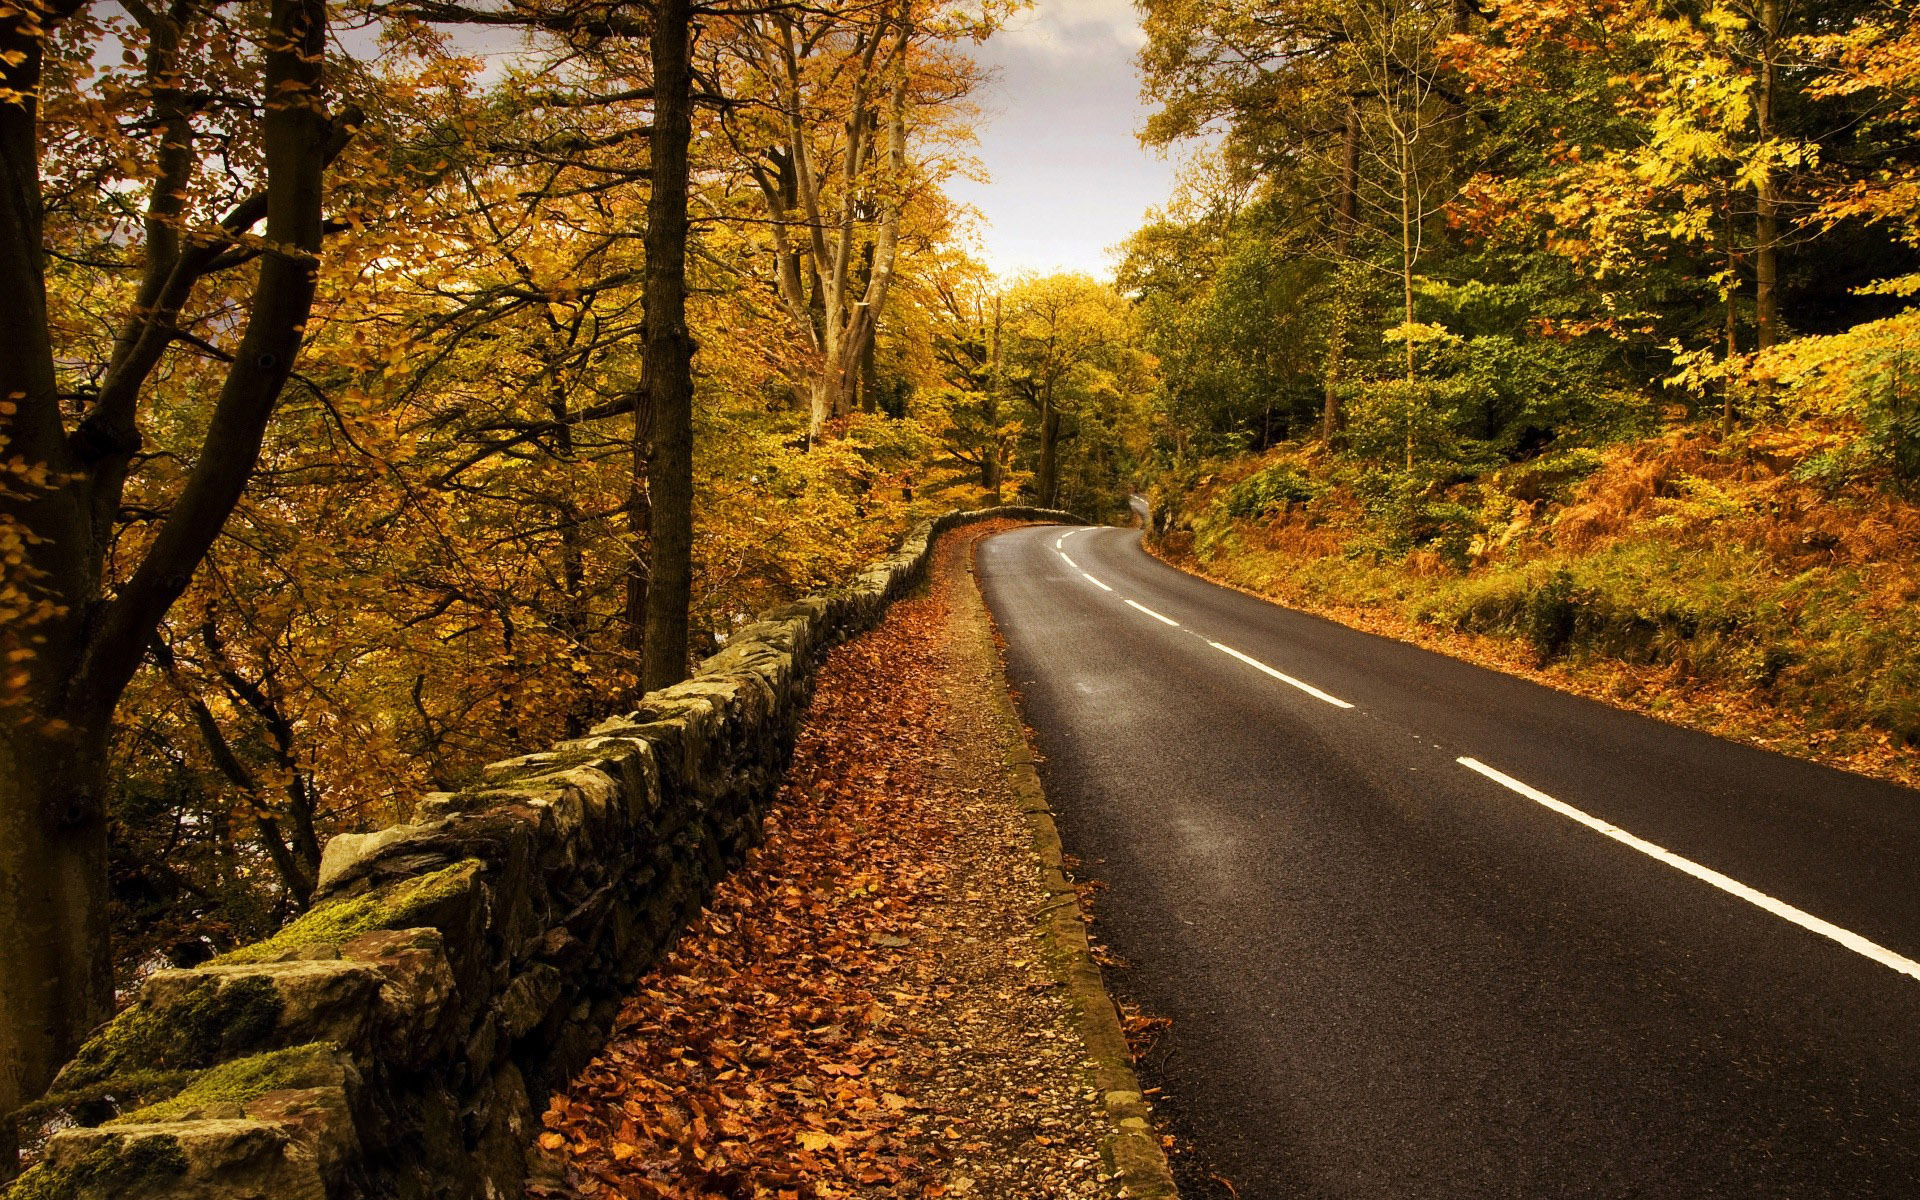 Free Download Mountain Road In The Fall Wallpapers Hd 413490 1920x1200 For Your Desktop Mobile Tablet Explore 37 1920 X 1200 Autumn Wallpaper 1920x1200 Hd Wallpaper Widescreen Wallpapers High